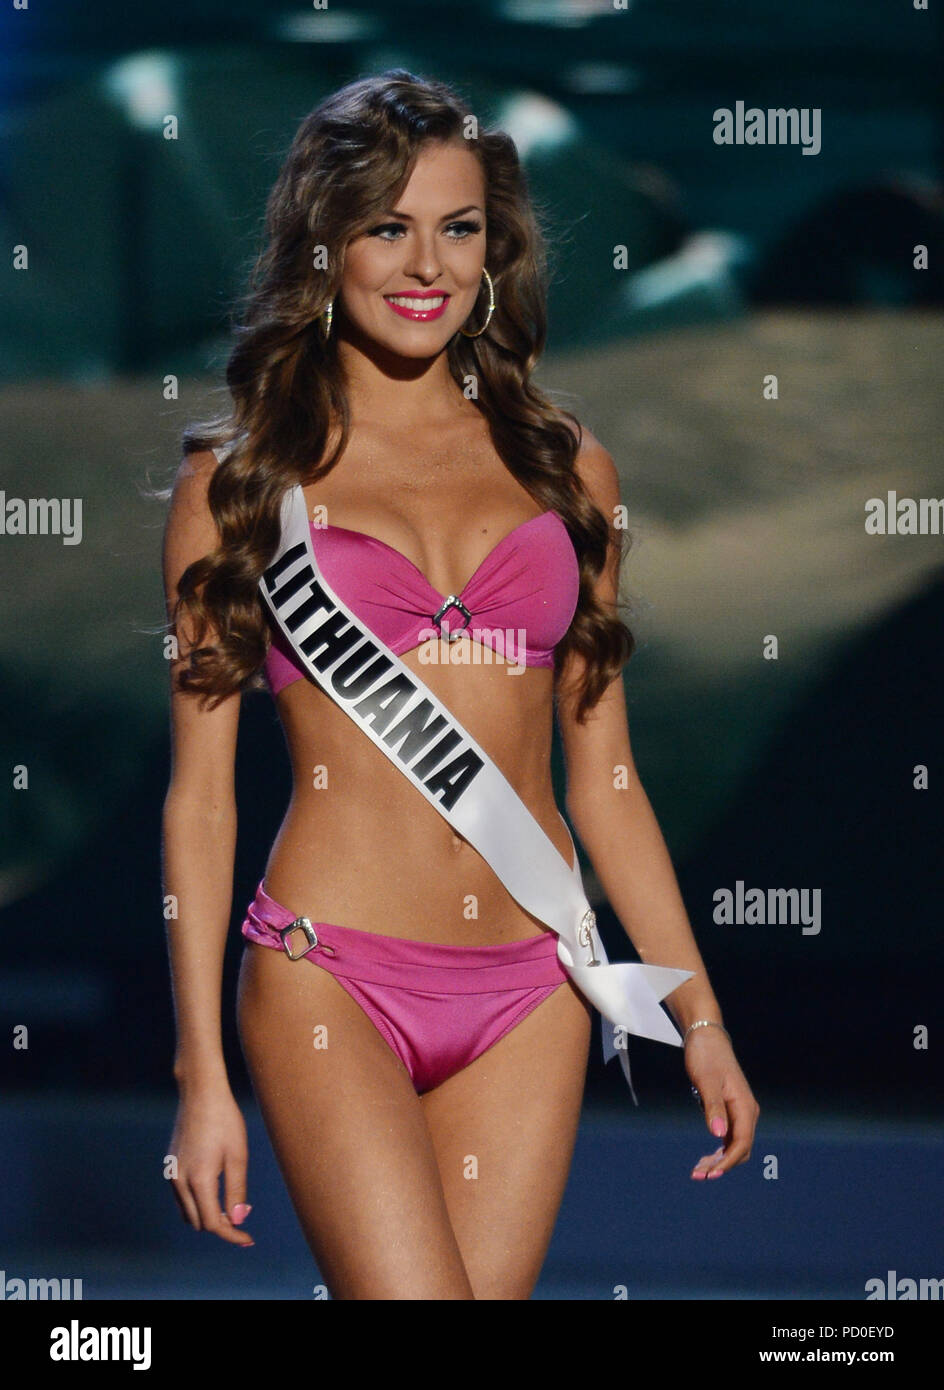 Miss lithuania stock photos miss lithuania stock images alamy miami fl january 21 miss lithuania patricija belousova 2014 competes in the the publicscrutiny Choice Image